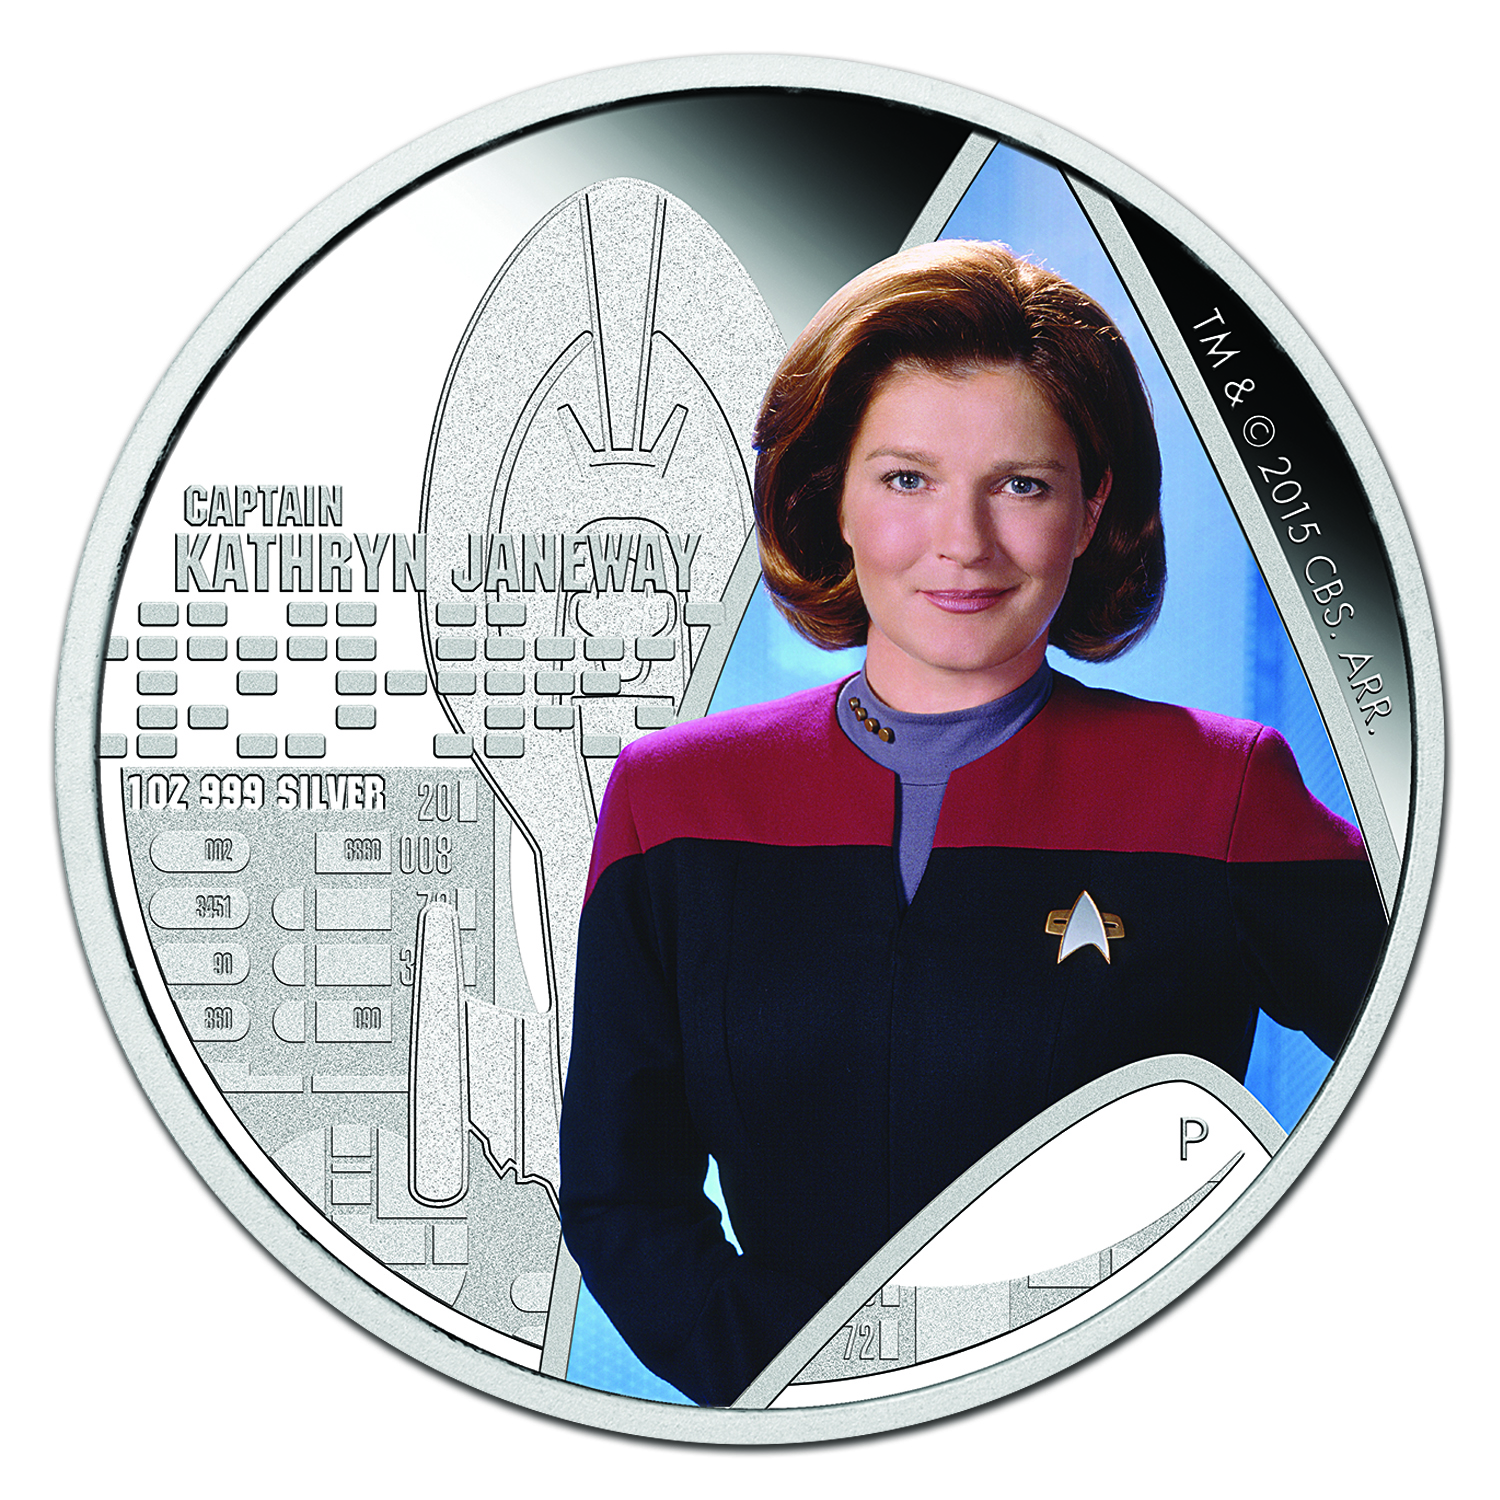 2015 Tuvalu 2-Coin 1 oz Silver Star Trek: Voyager Proof Set